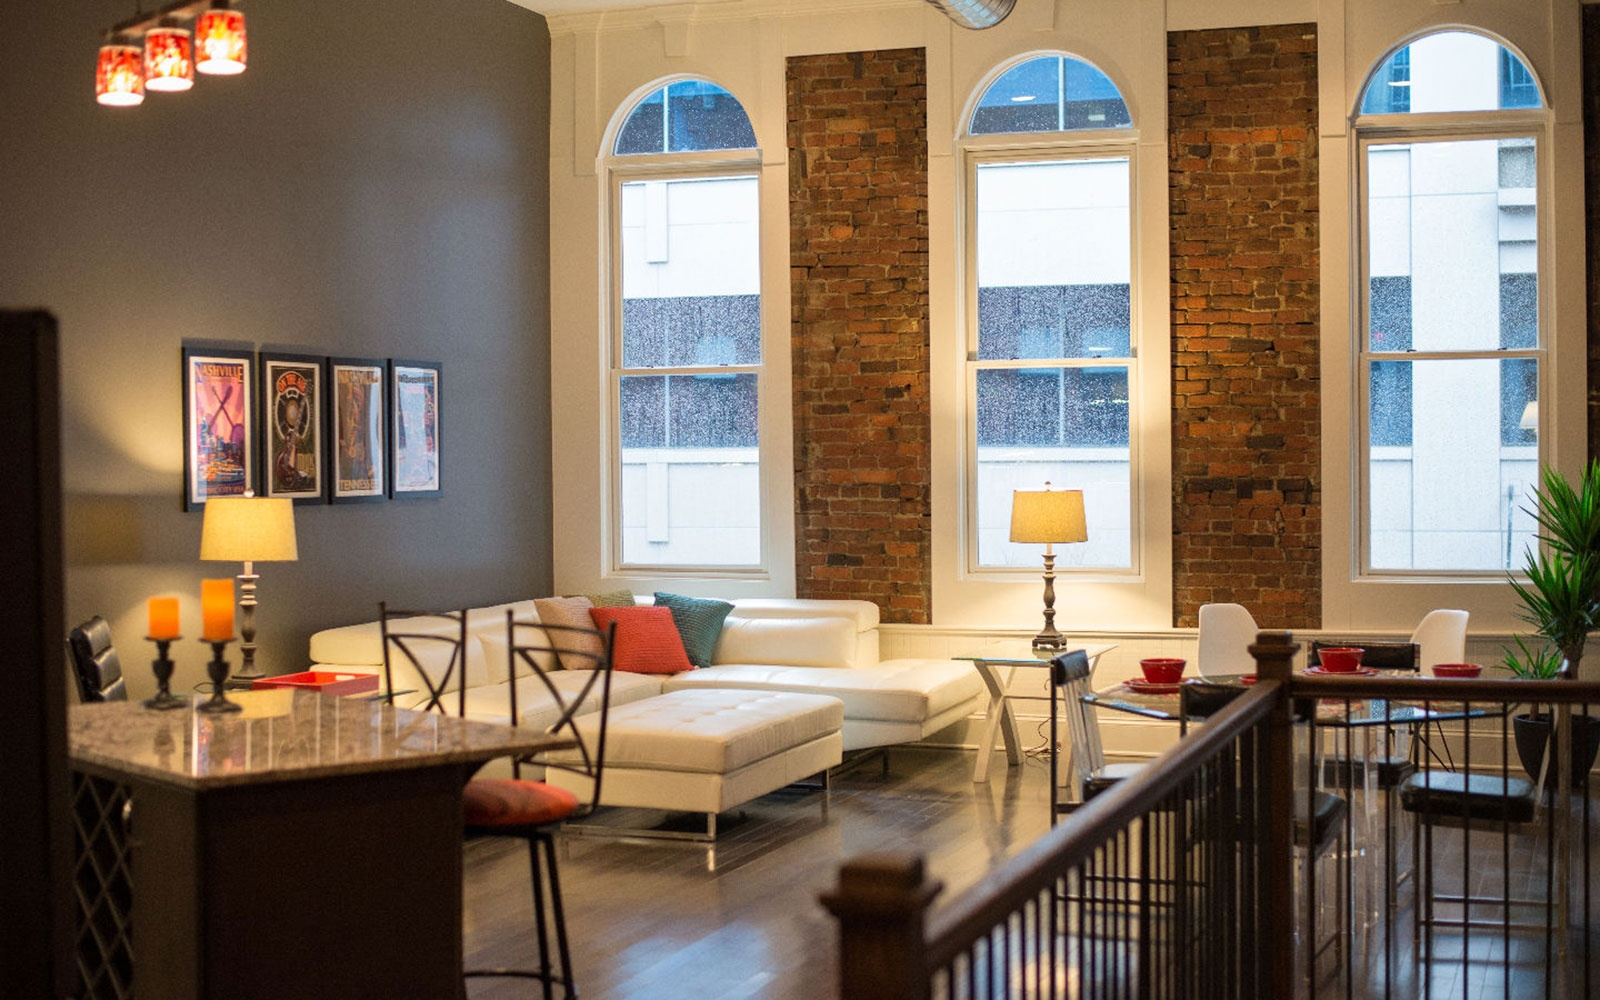 Massive Modern Loft in Nashville  Sleeps 12. 20 Unique Group Rental Homes   Travel   Leisure